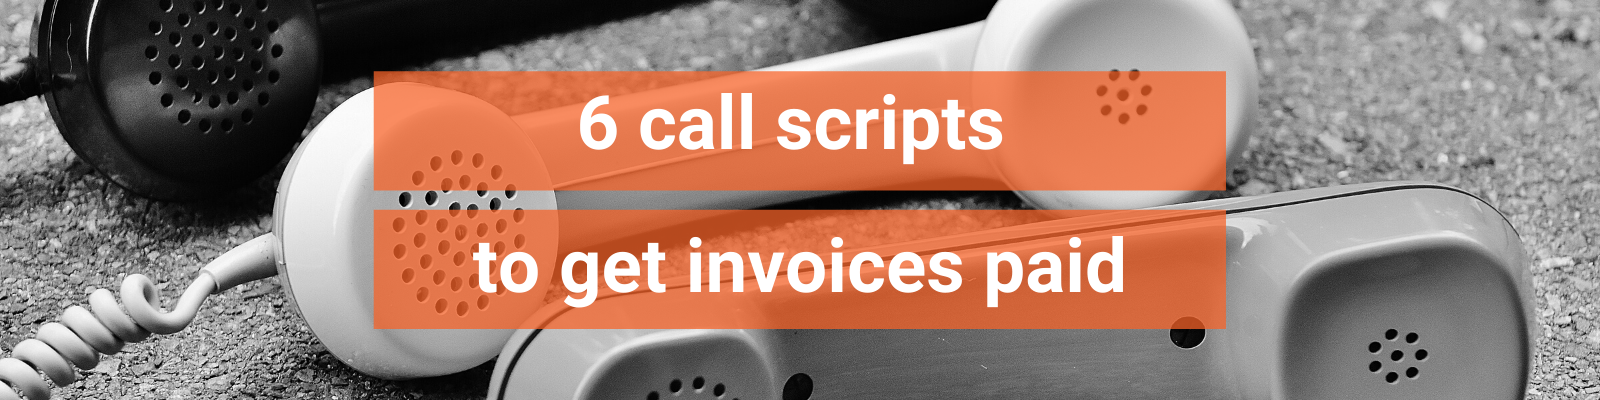 Chaser with title of blog - call scripts to get invoices paid over the phone